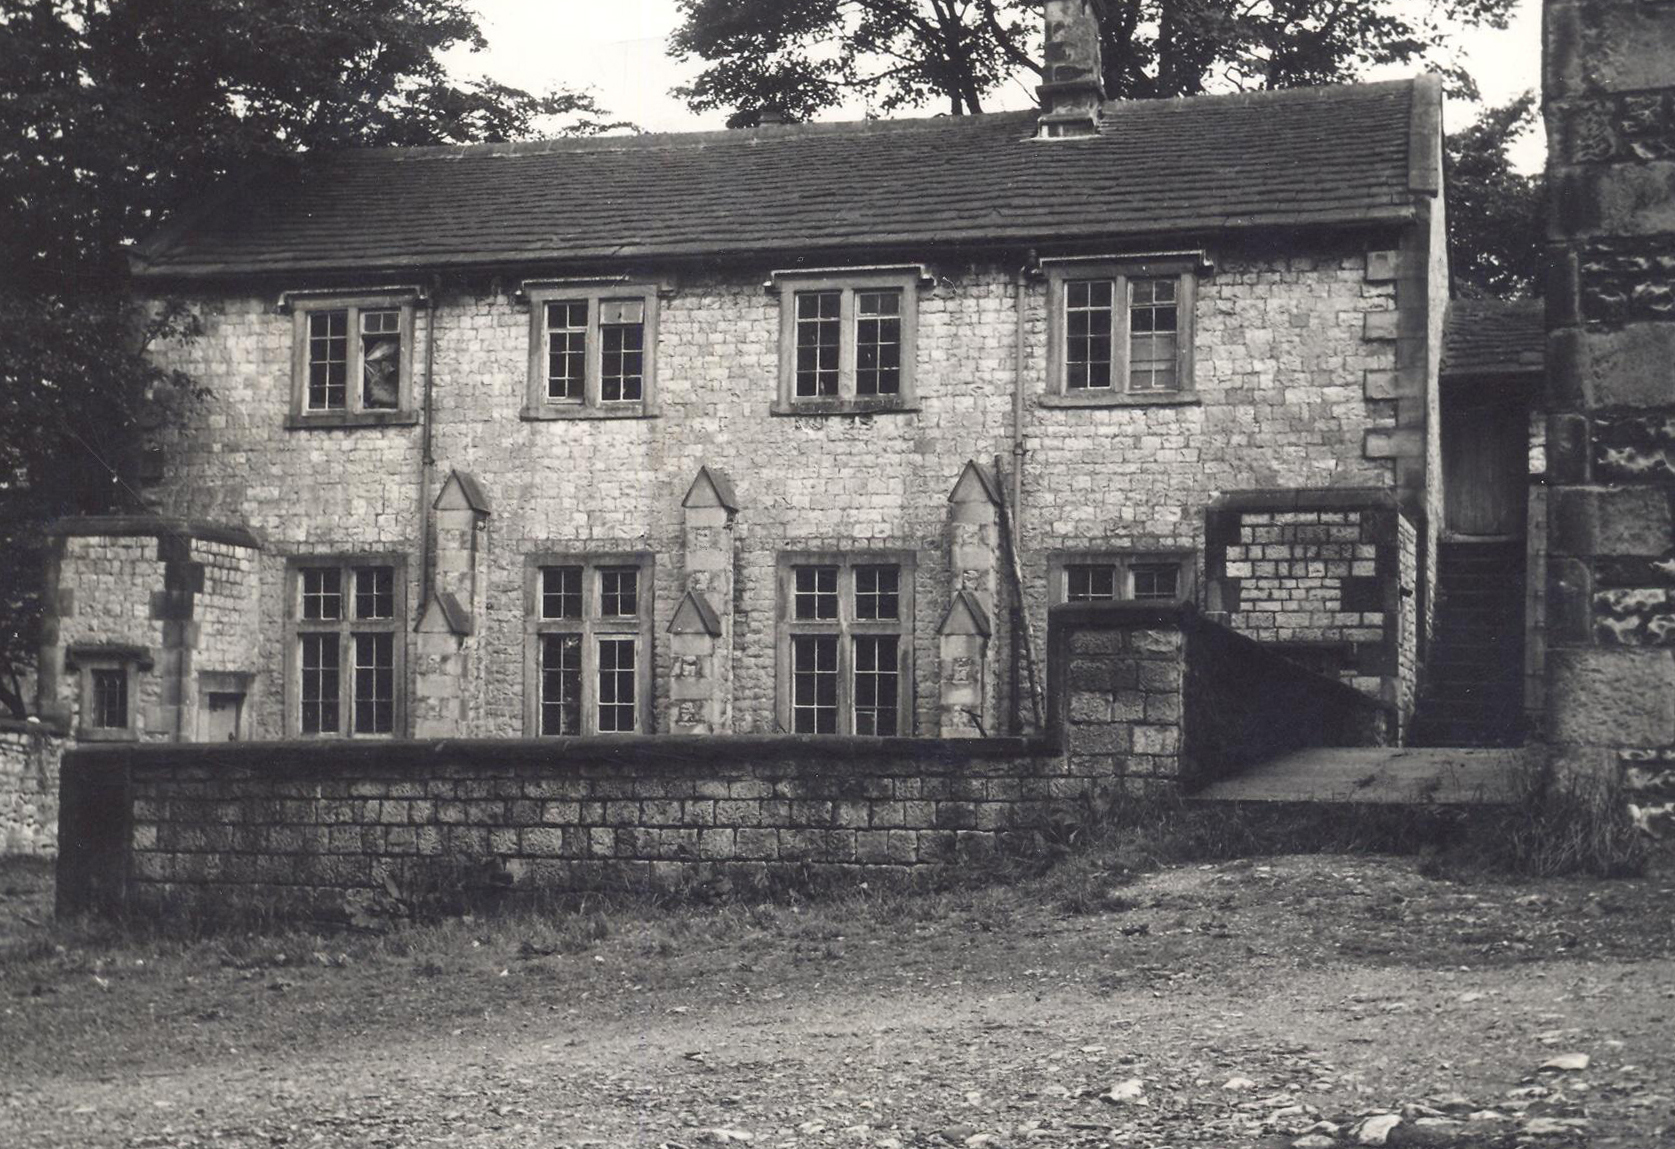 Black and white photograph of the Old Grammar School Tideswell, a two storey stone building with square-headed windows.